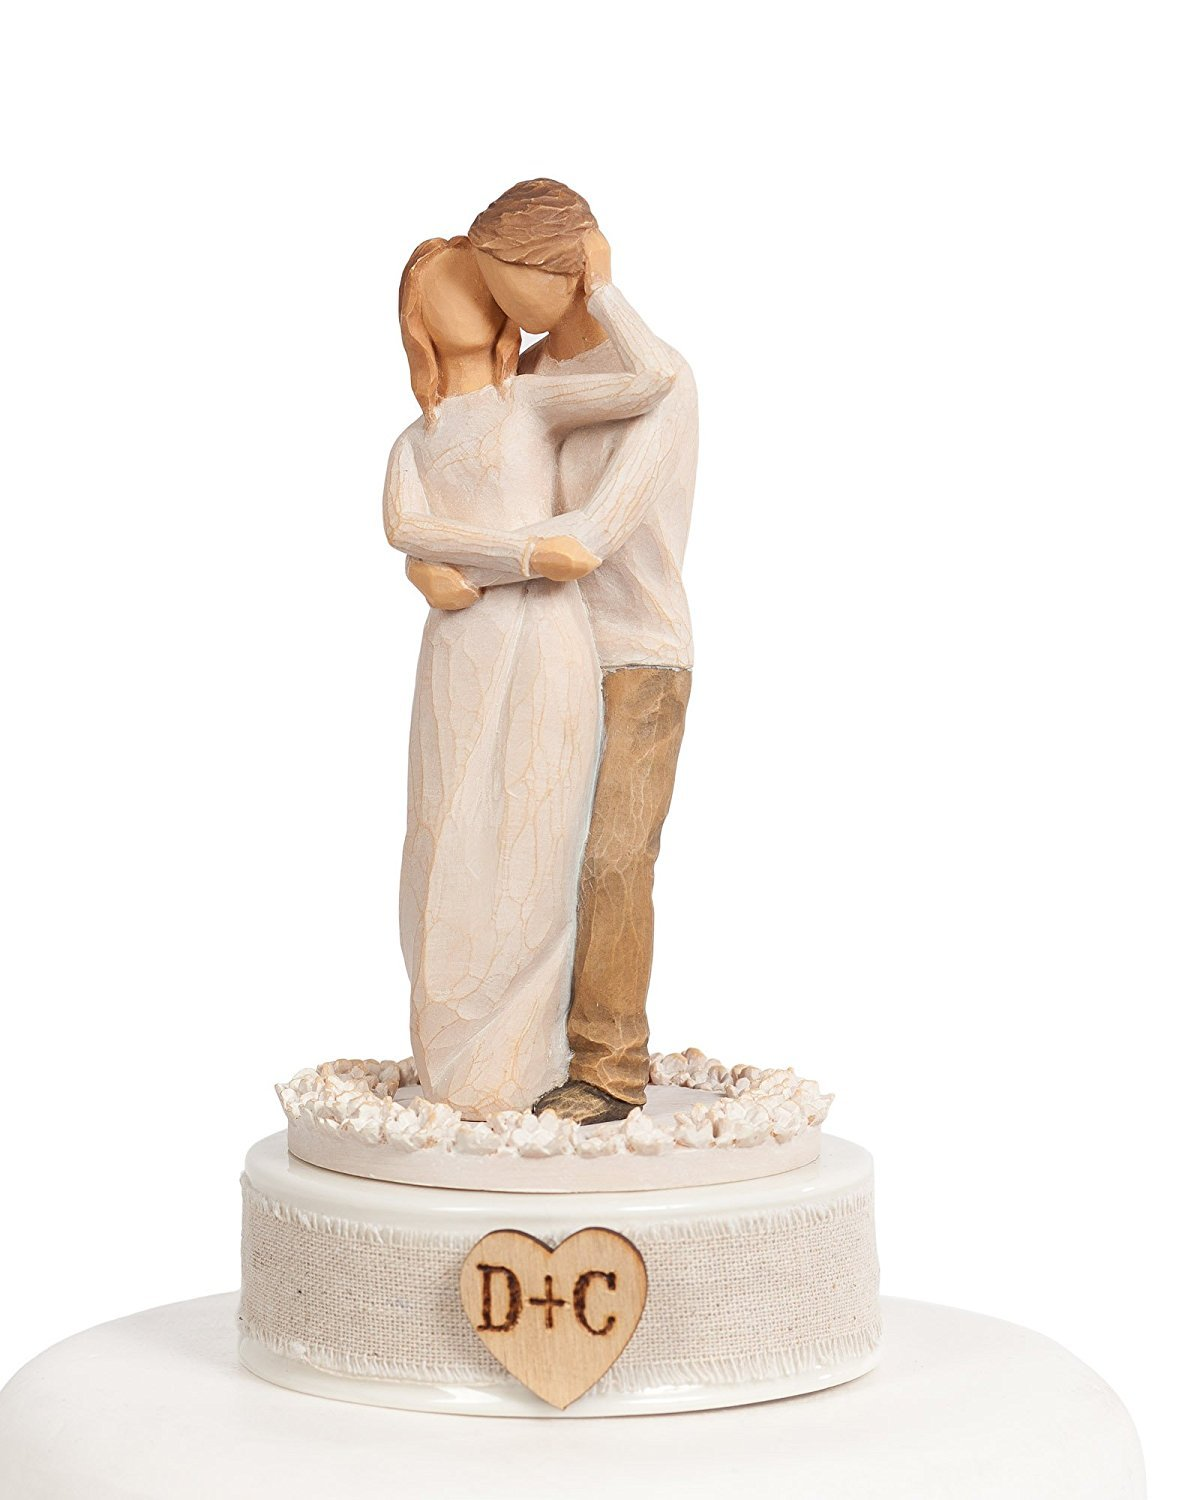 Personalized Willow Tree ''Together'' Wedding Cake Topper ... by DEMDACO - Home (Image #1)